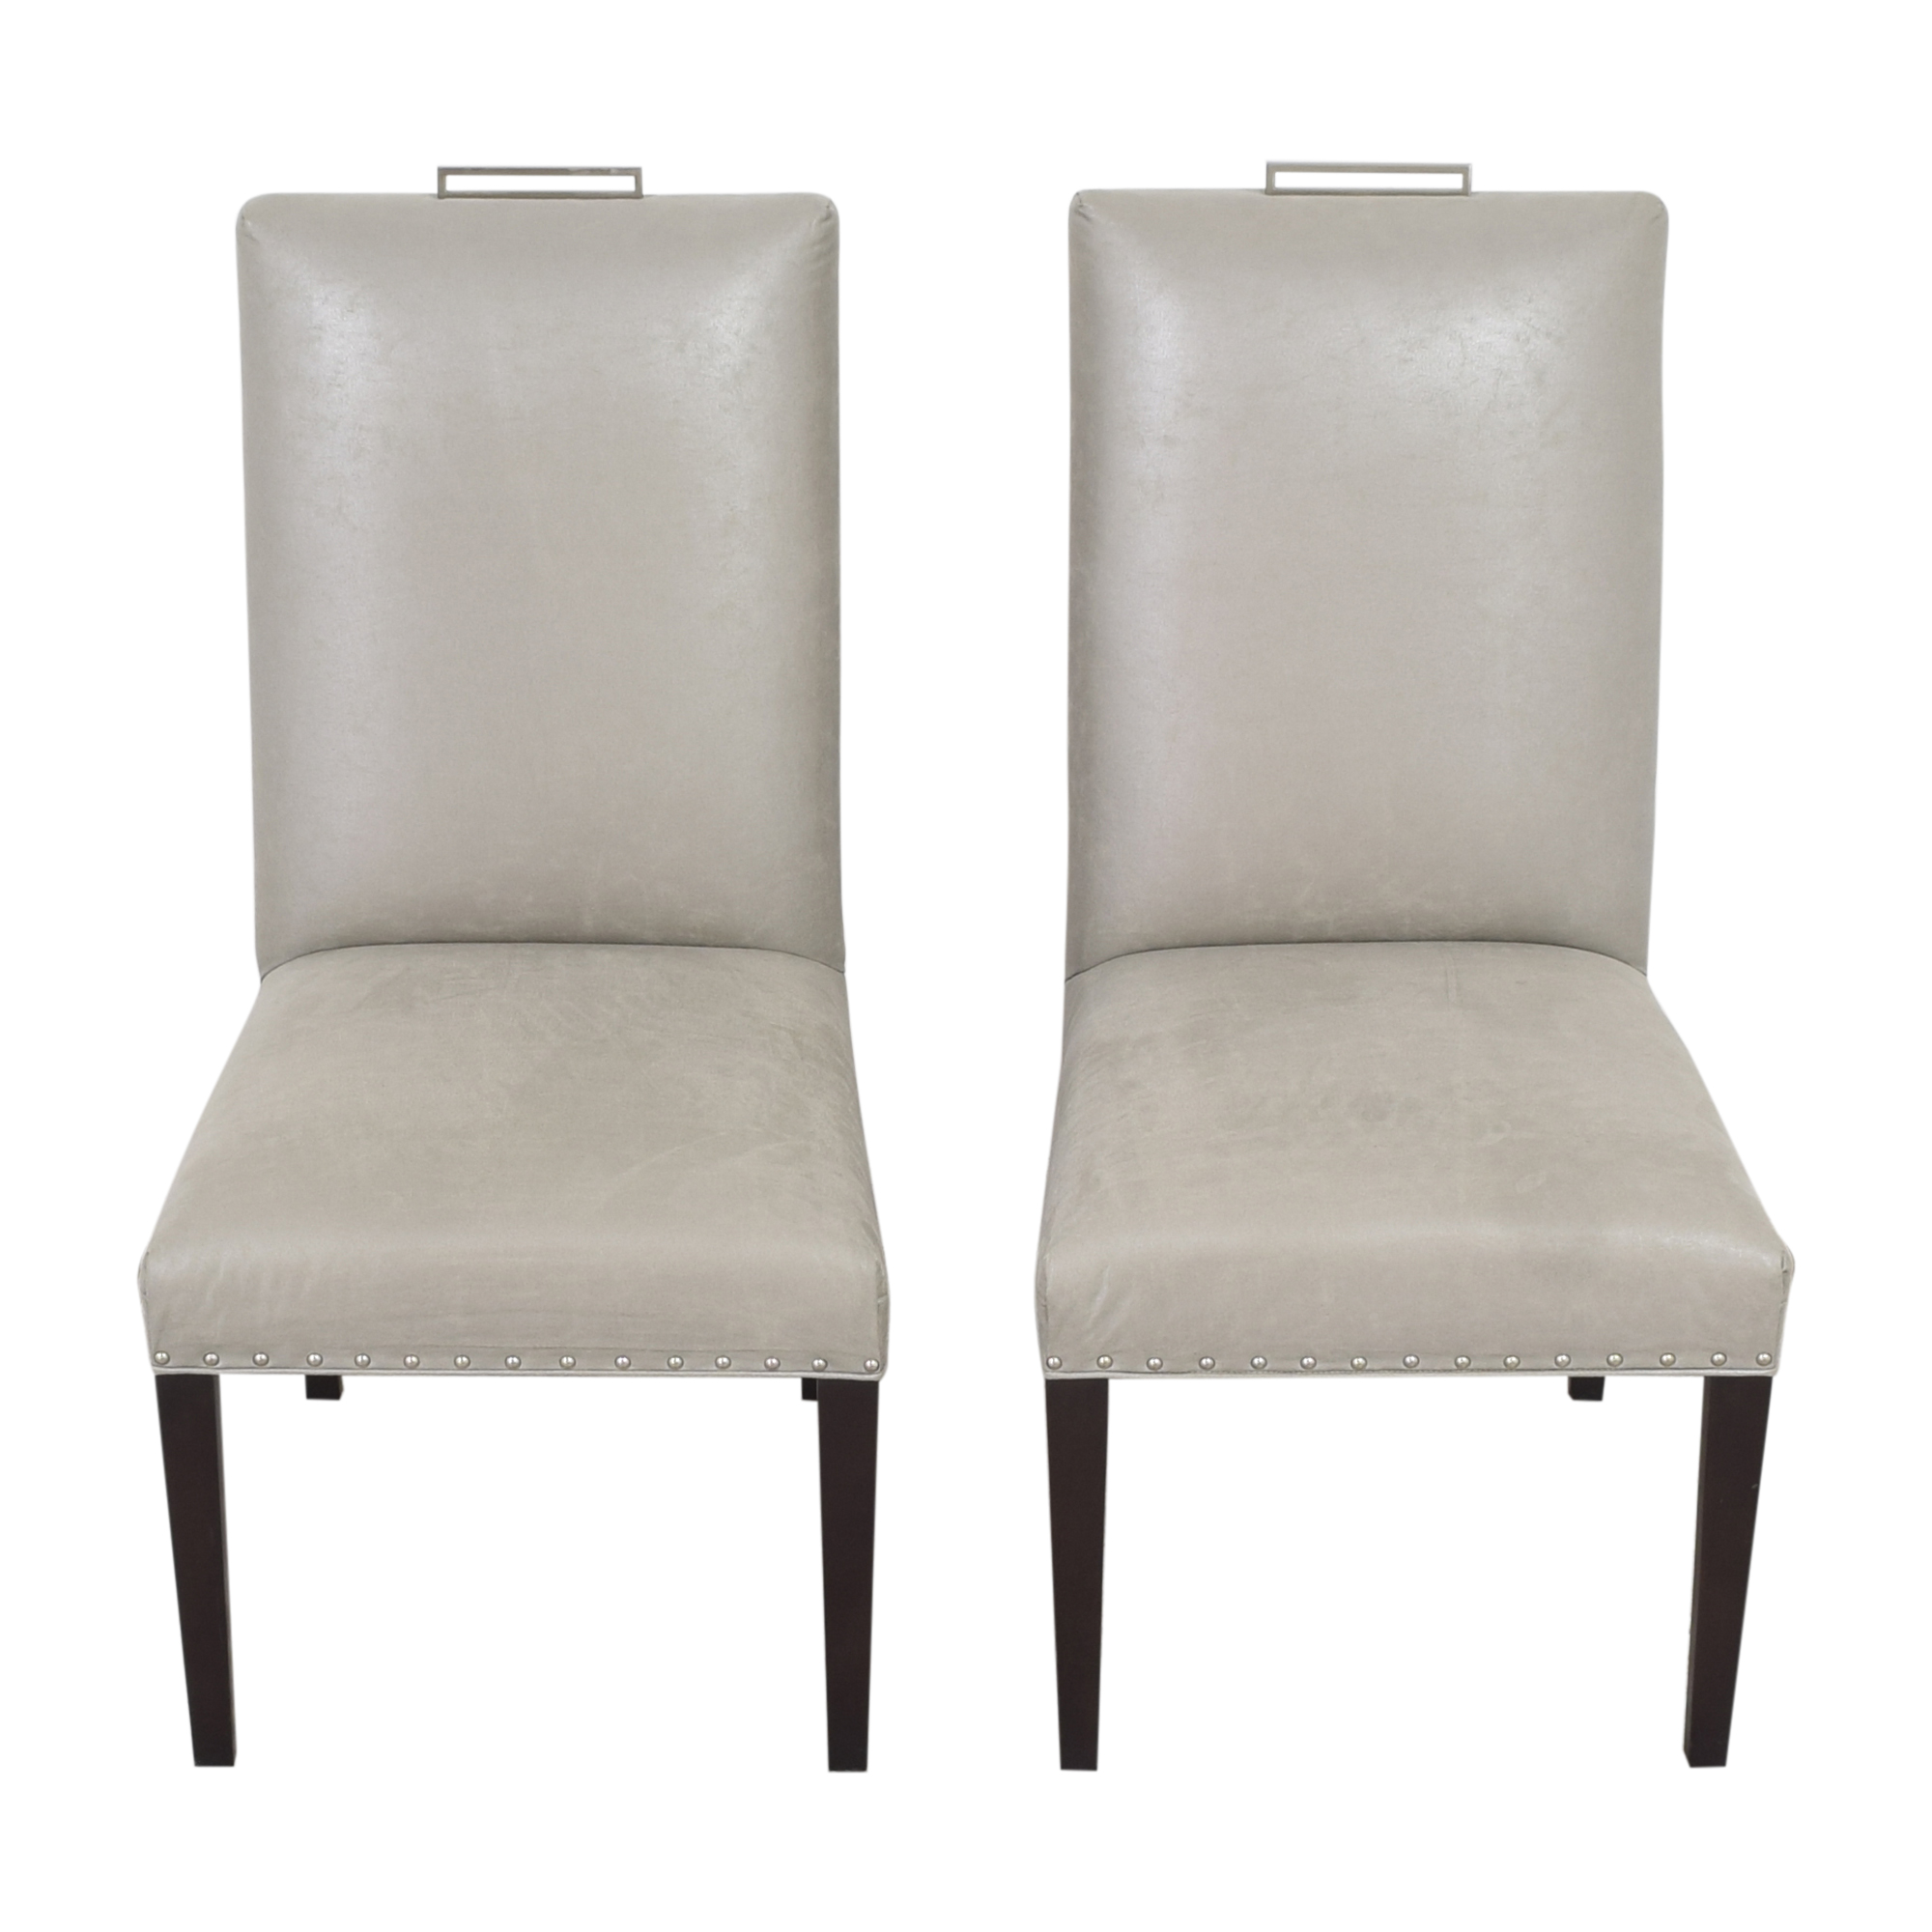 Vanguard Michael Weiss Everhart Side Dining Chairs / Chairs